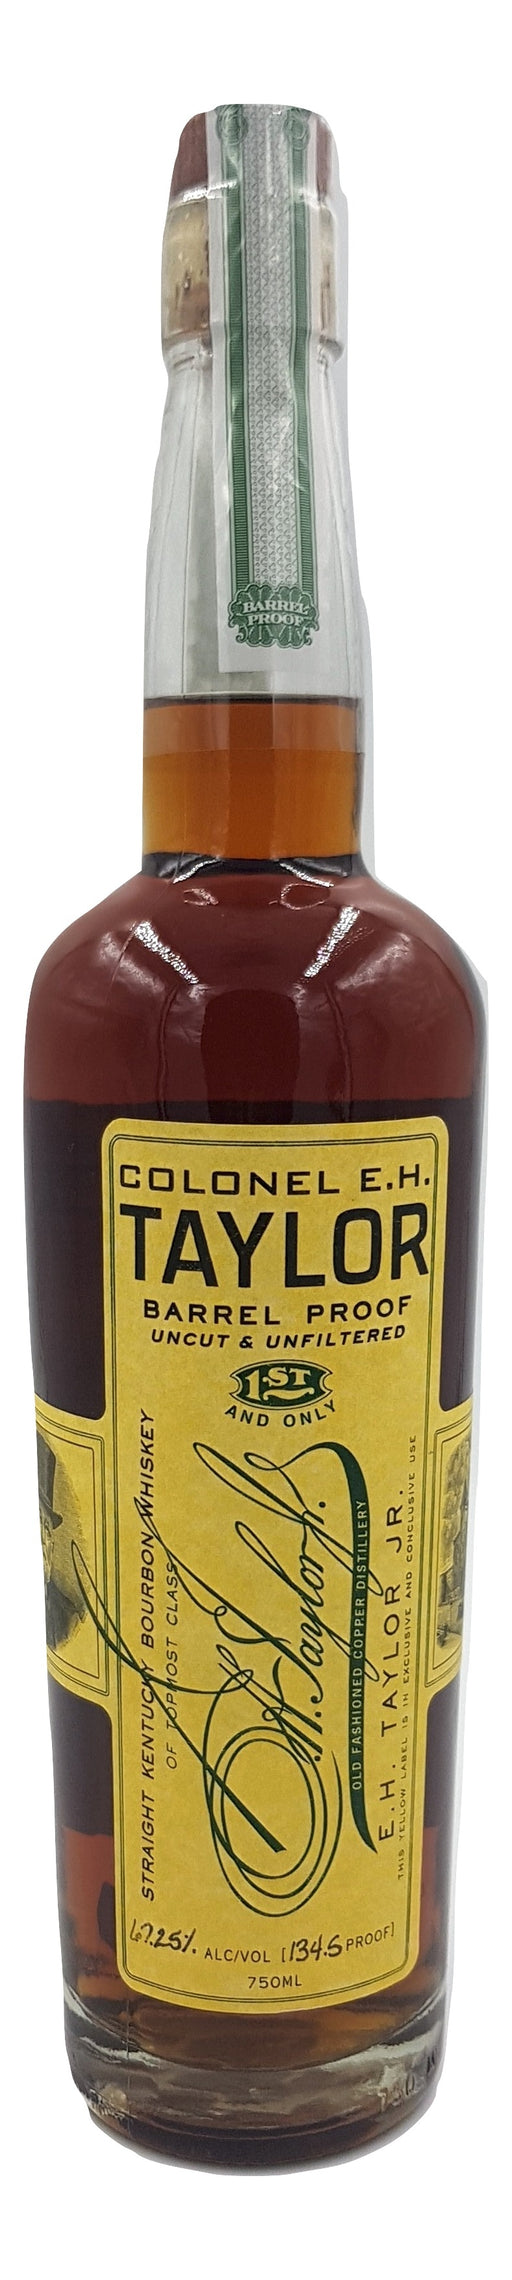 Colonel EH Taylor Barrel Proof 2012 For Sale - NativeSpiritsOnline